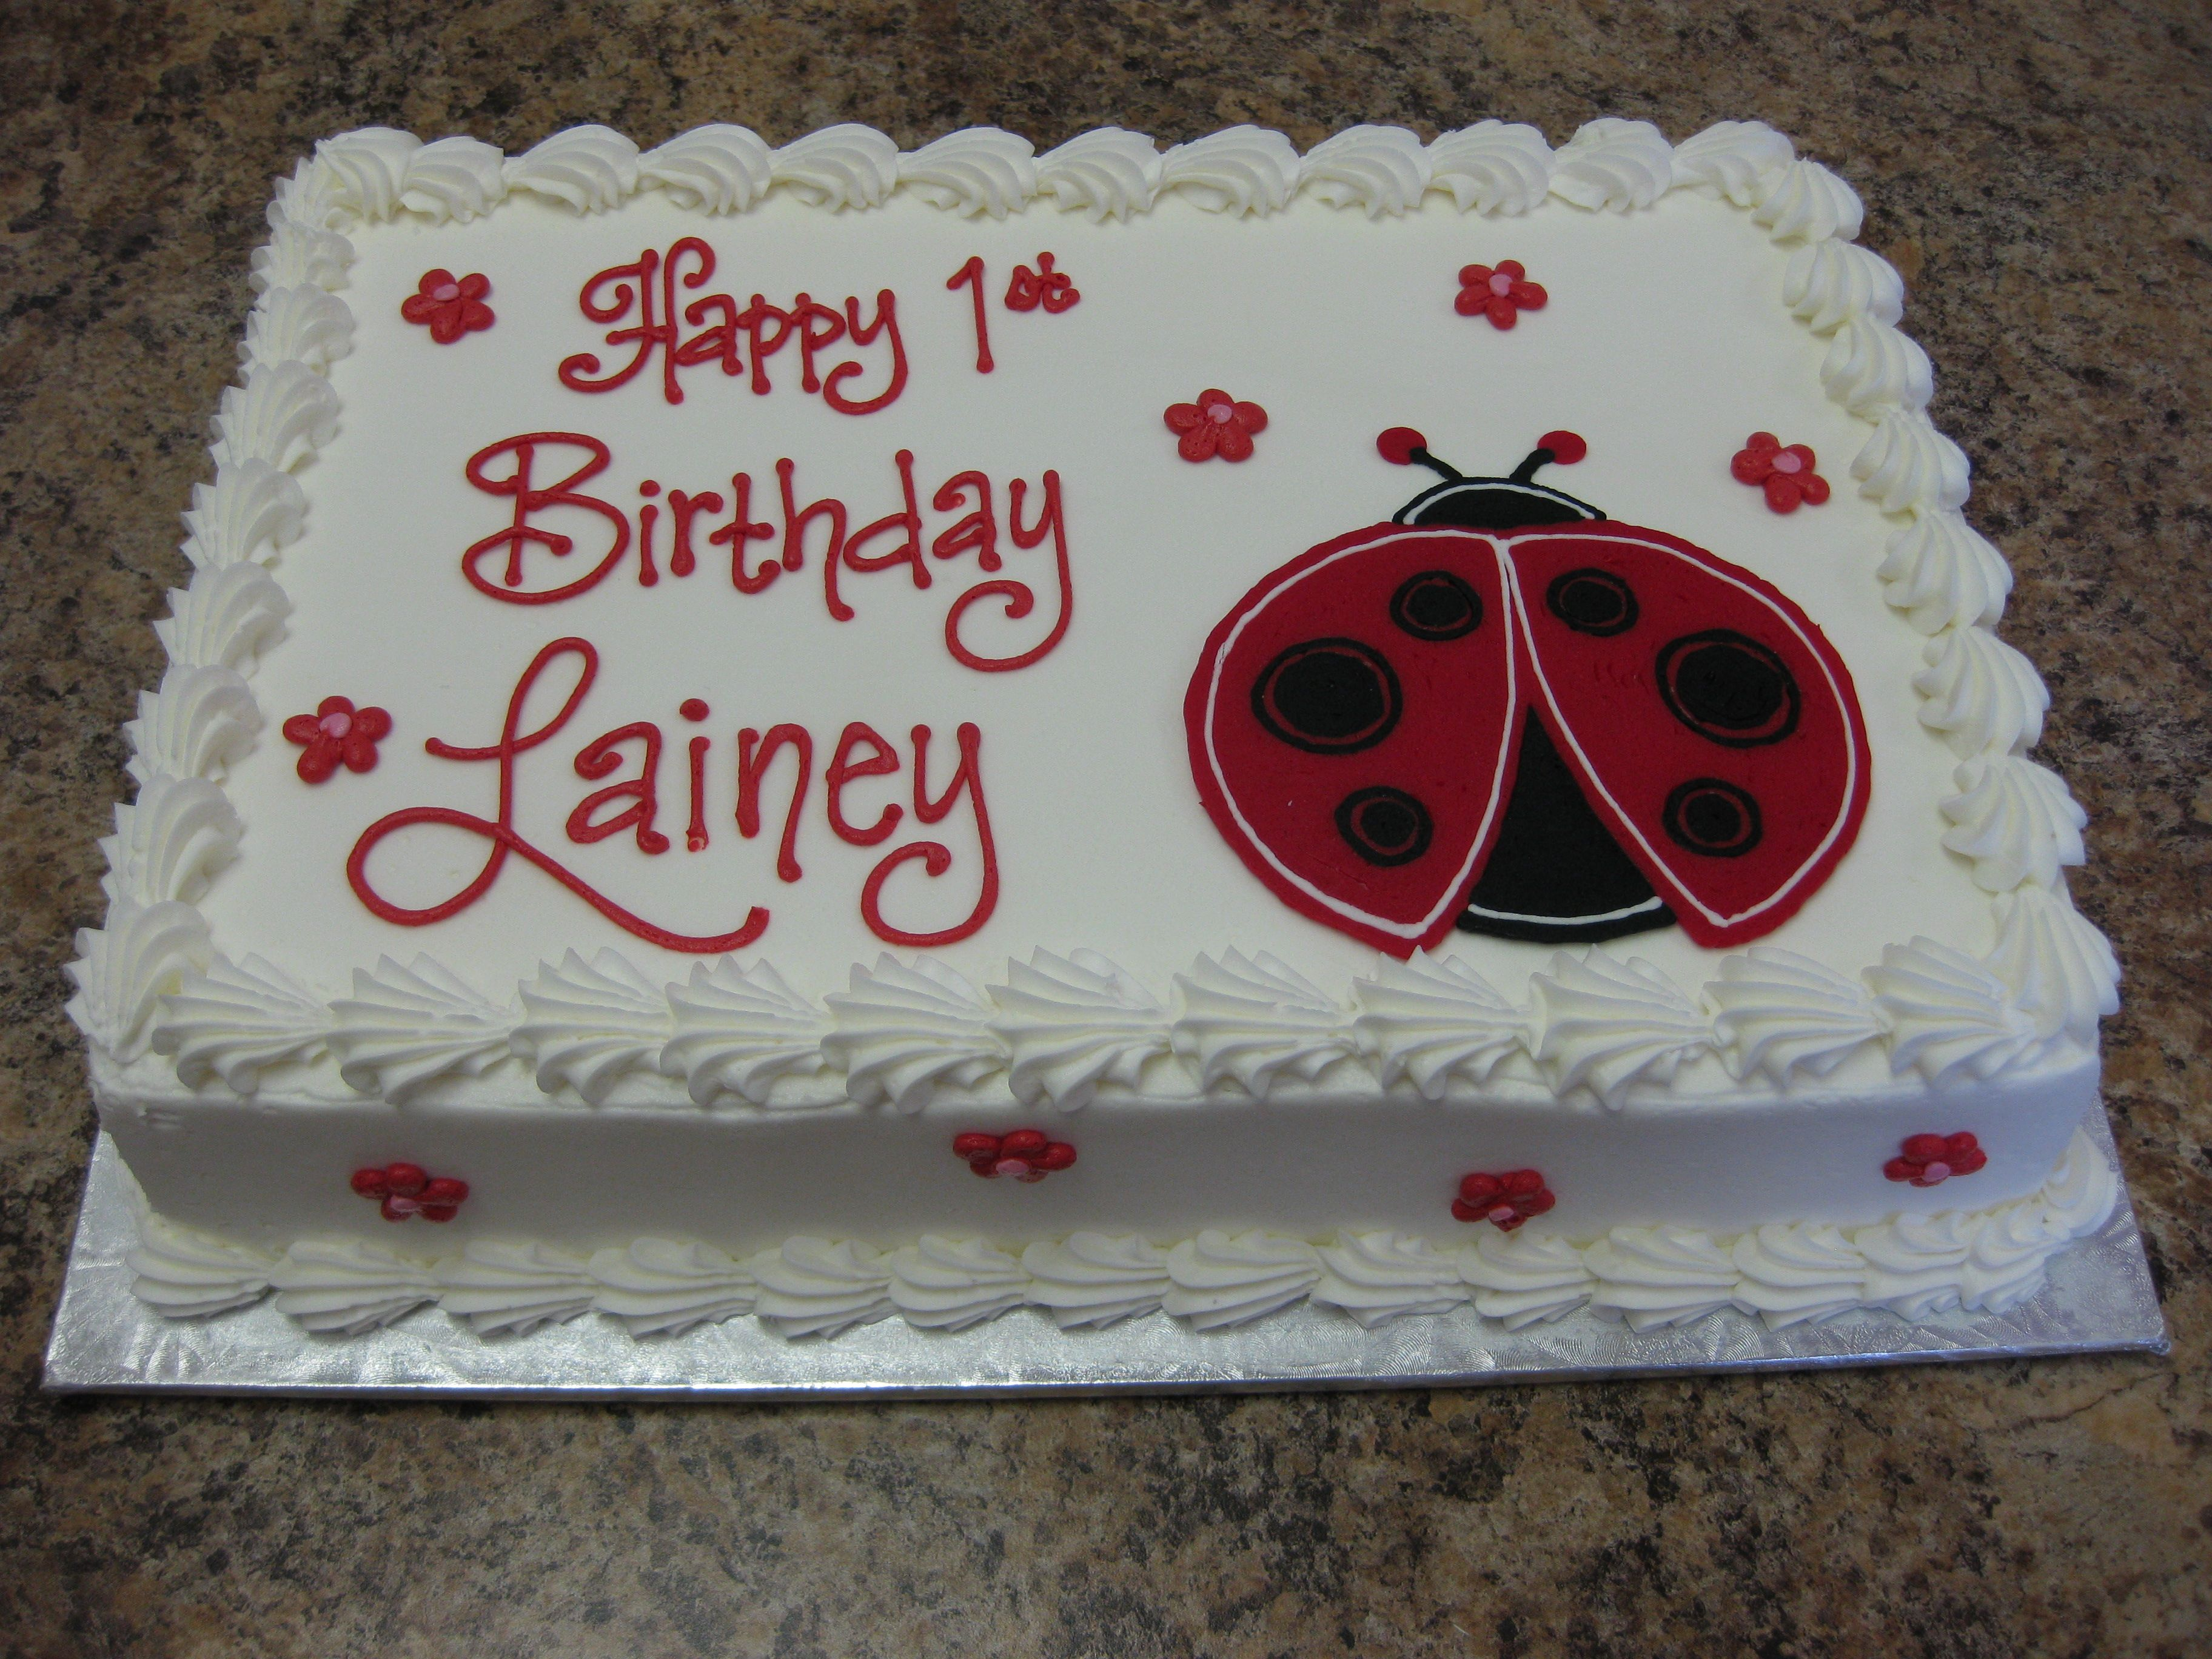 Swell Ladybug Cake For Coles Birthday With Images Bug Birthday Funny Birthday Cards Online Kookostrdamsfinfo